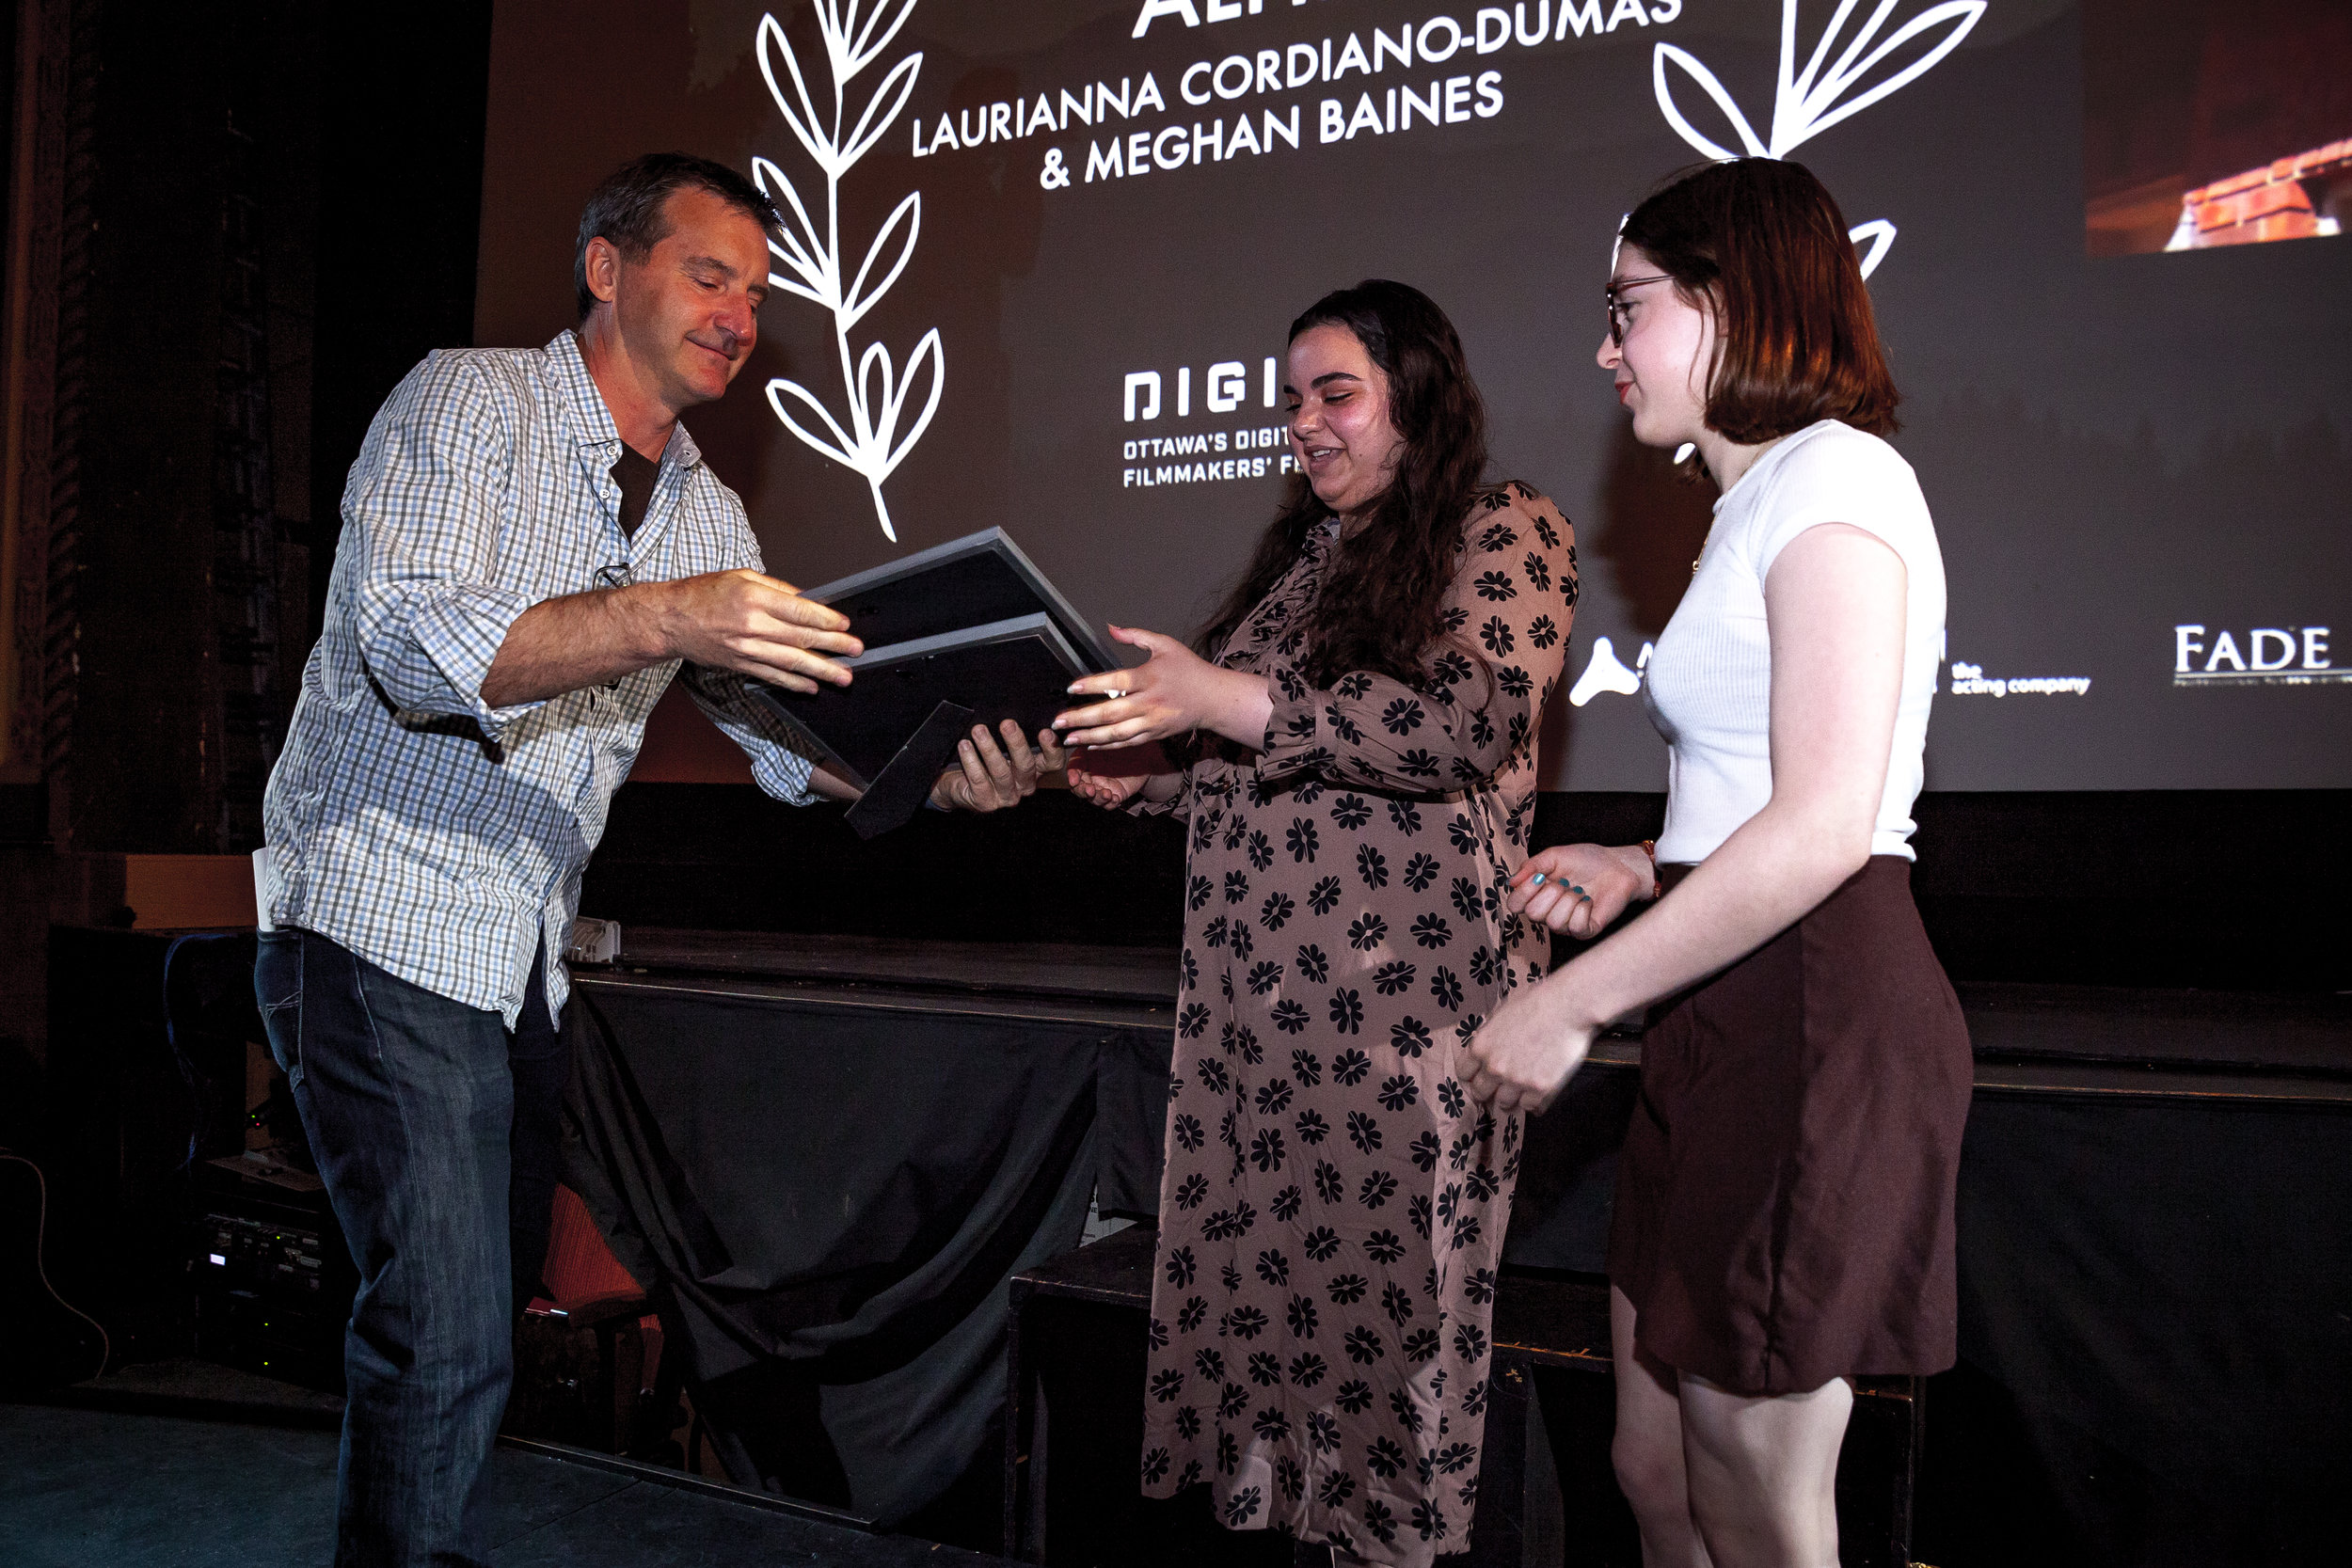 Co-Filmmakers Laurianna Cordiano-Dumas & Meghan Baines being presented with their Best Film award by Digi60 President, Kevin Burton at the 2019 Spring Festival.